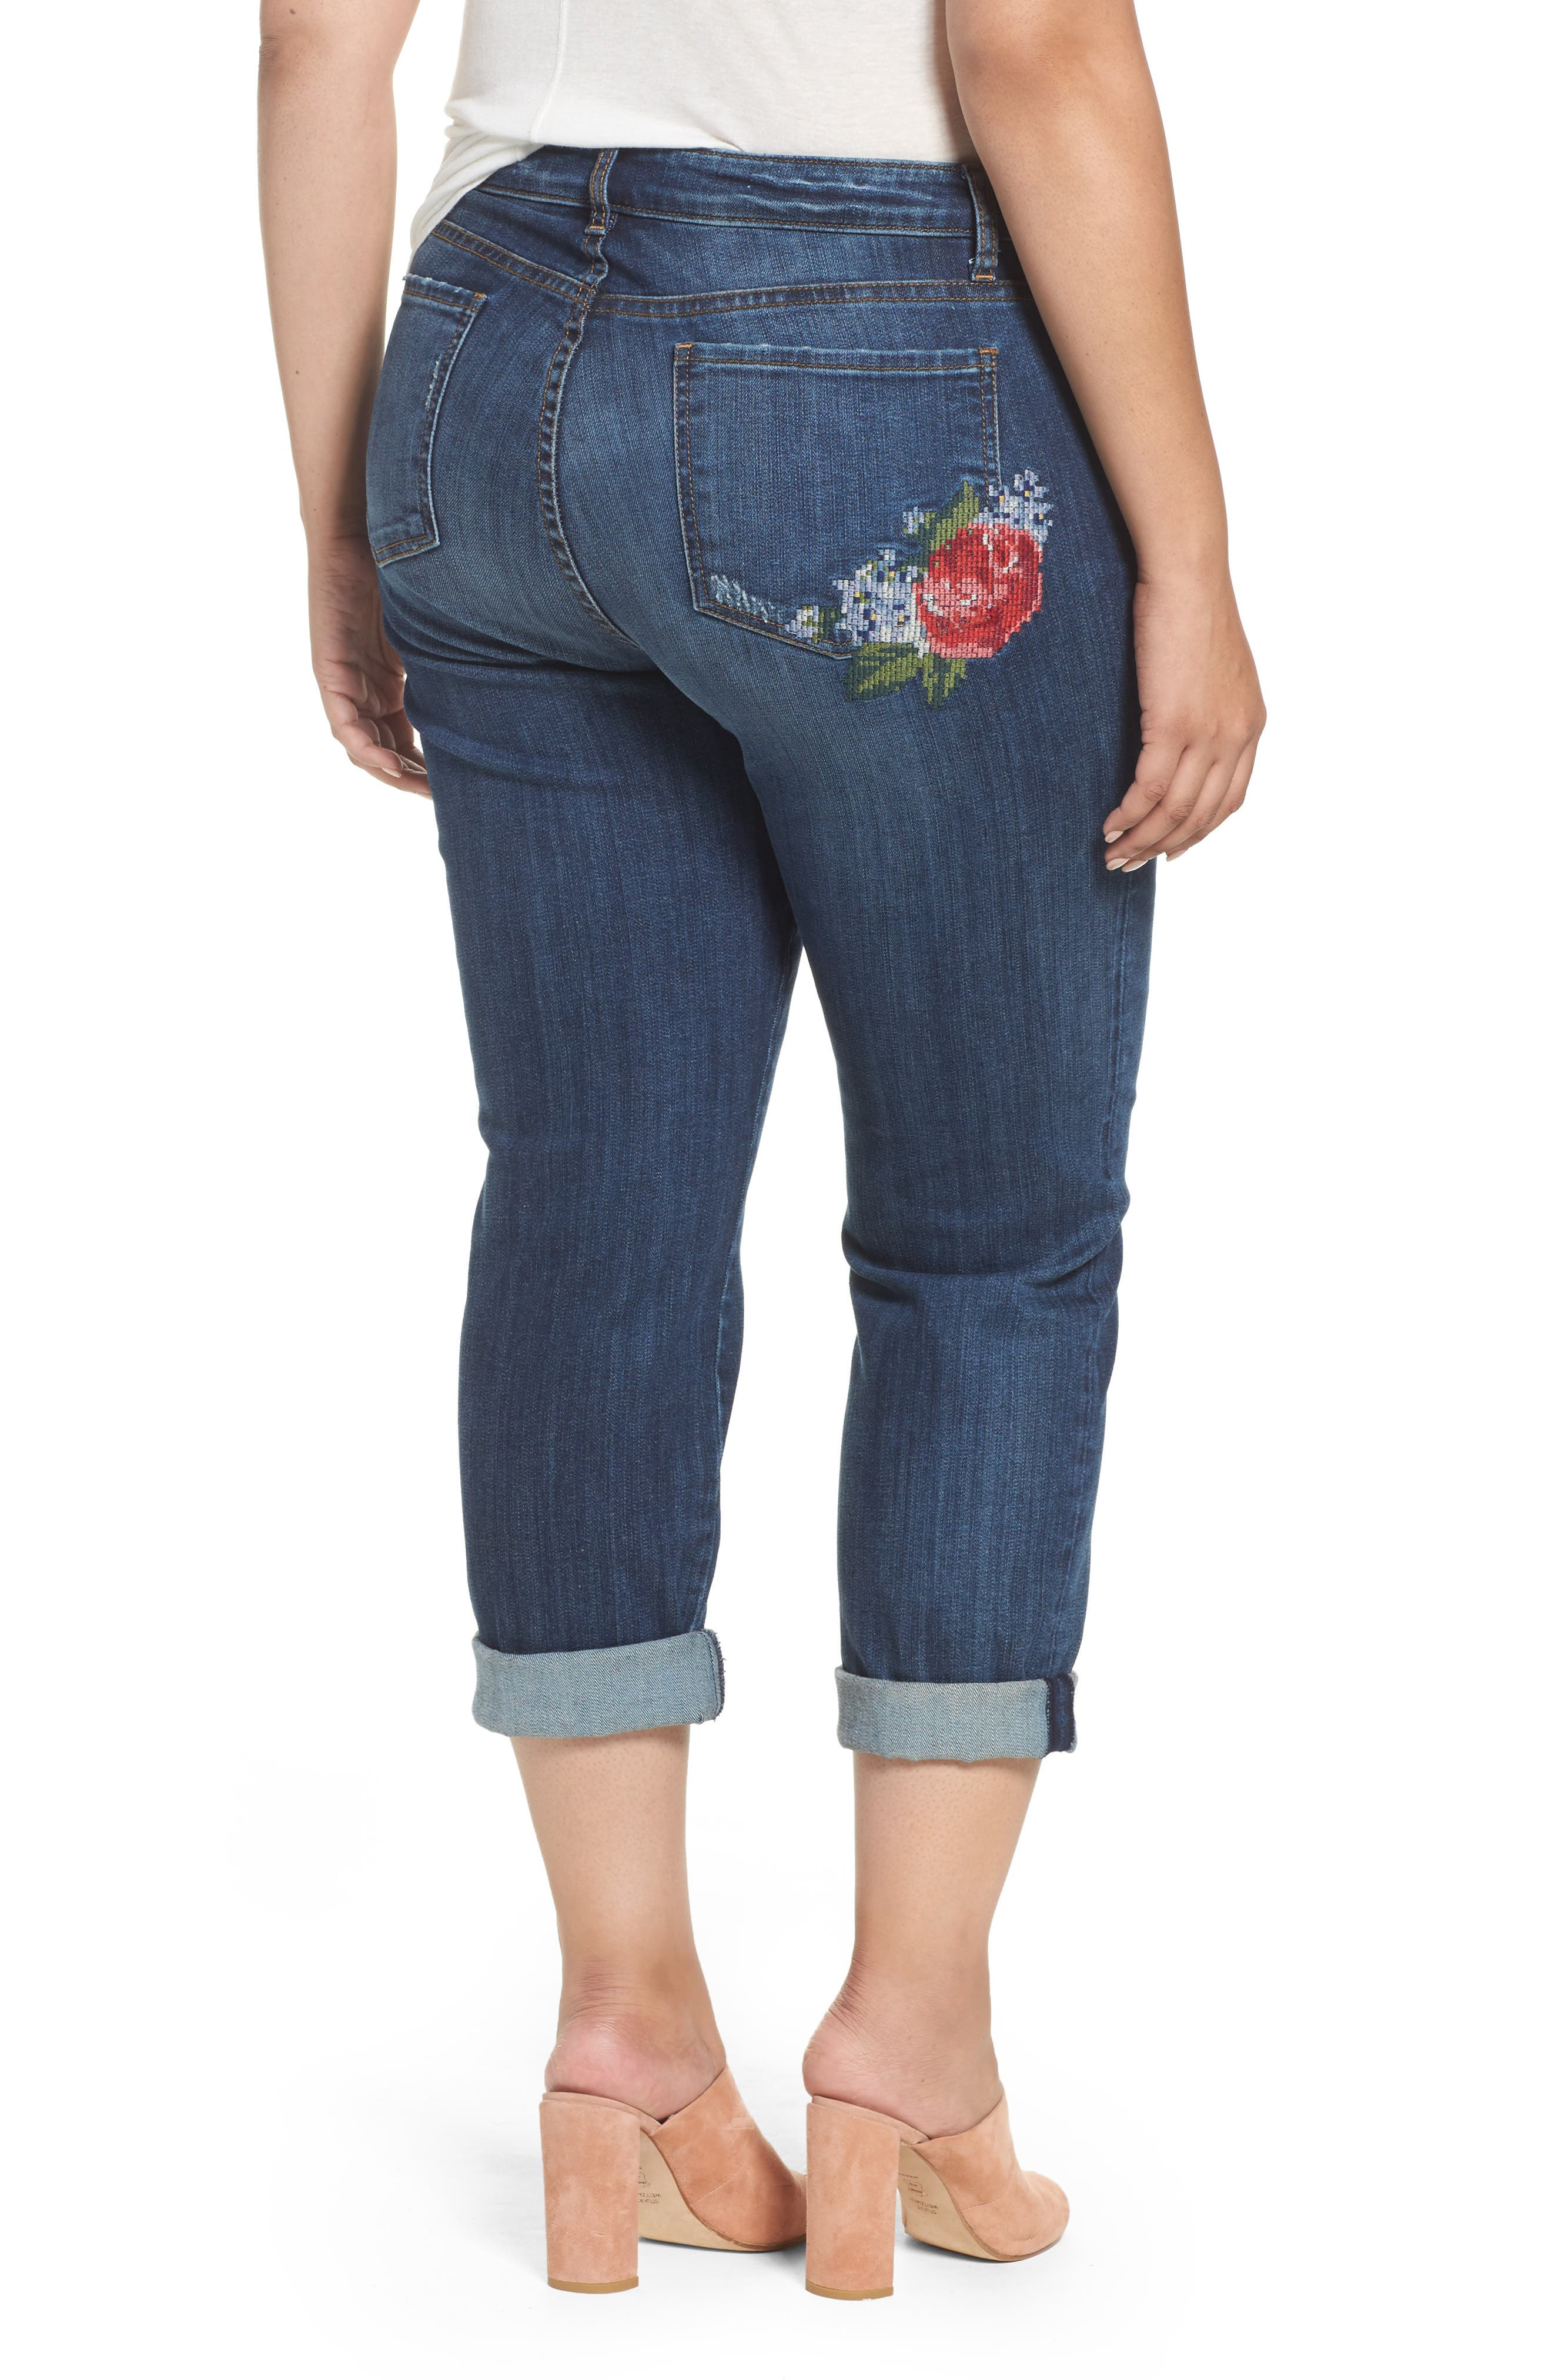 Alternate Image 3  - KUT from the Kloth Catherine Embroidered Boyfriend Jeans (Premier Dark) (Plus Size)